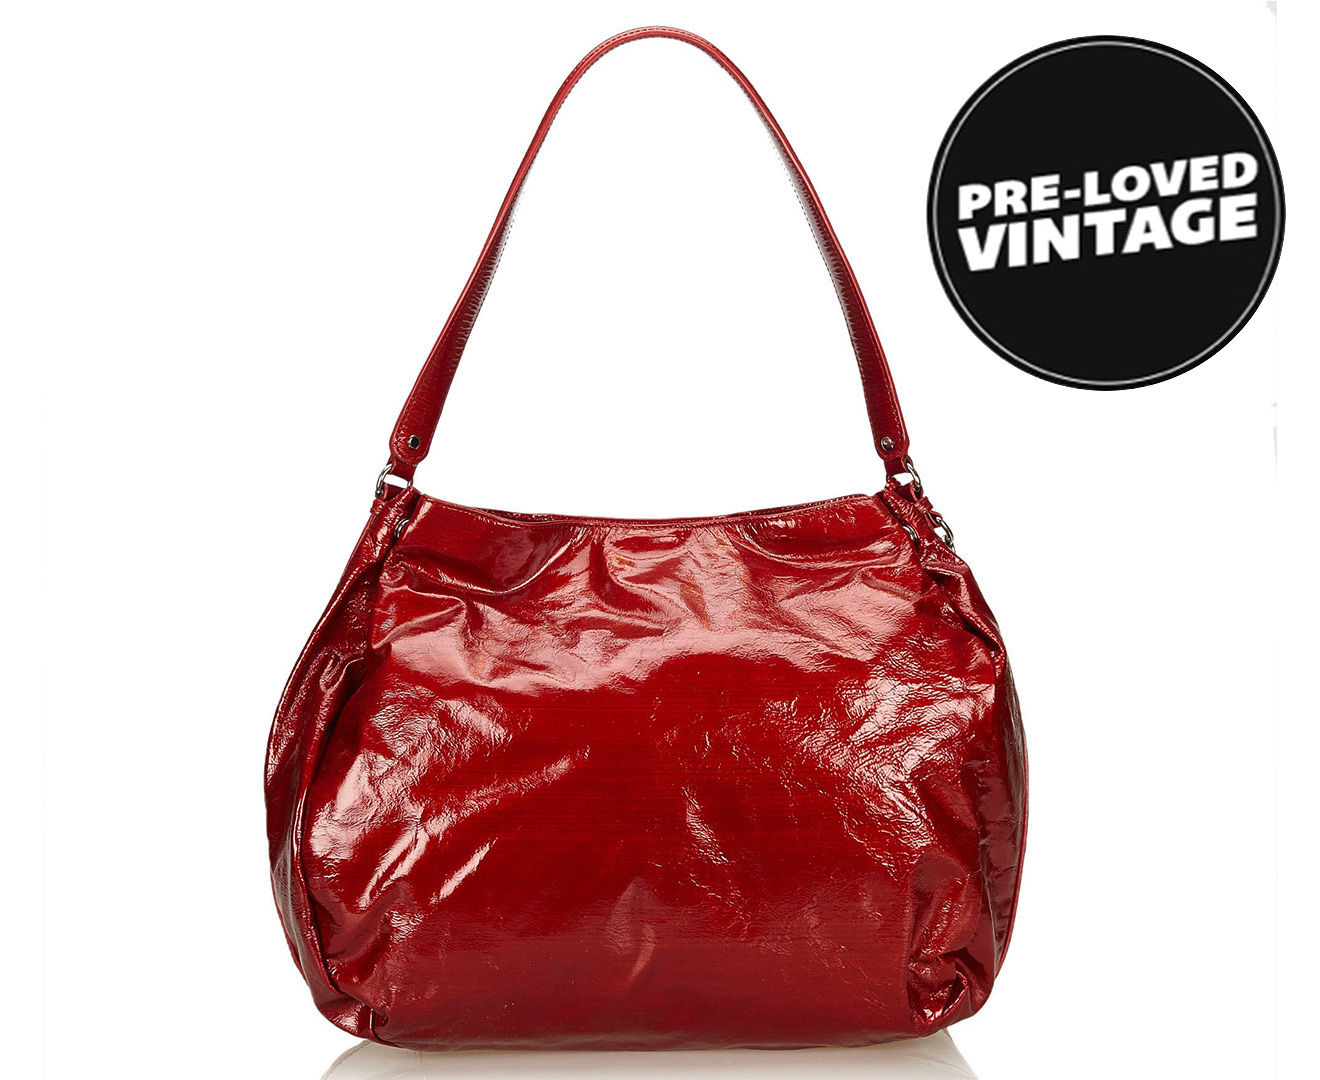 475075f5f25c Pre-Loved Celine Patent Leather Shoulder Bag 7JCESH003 - Red | Scoopon  Shopping